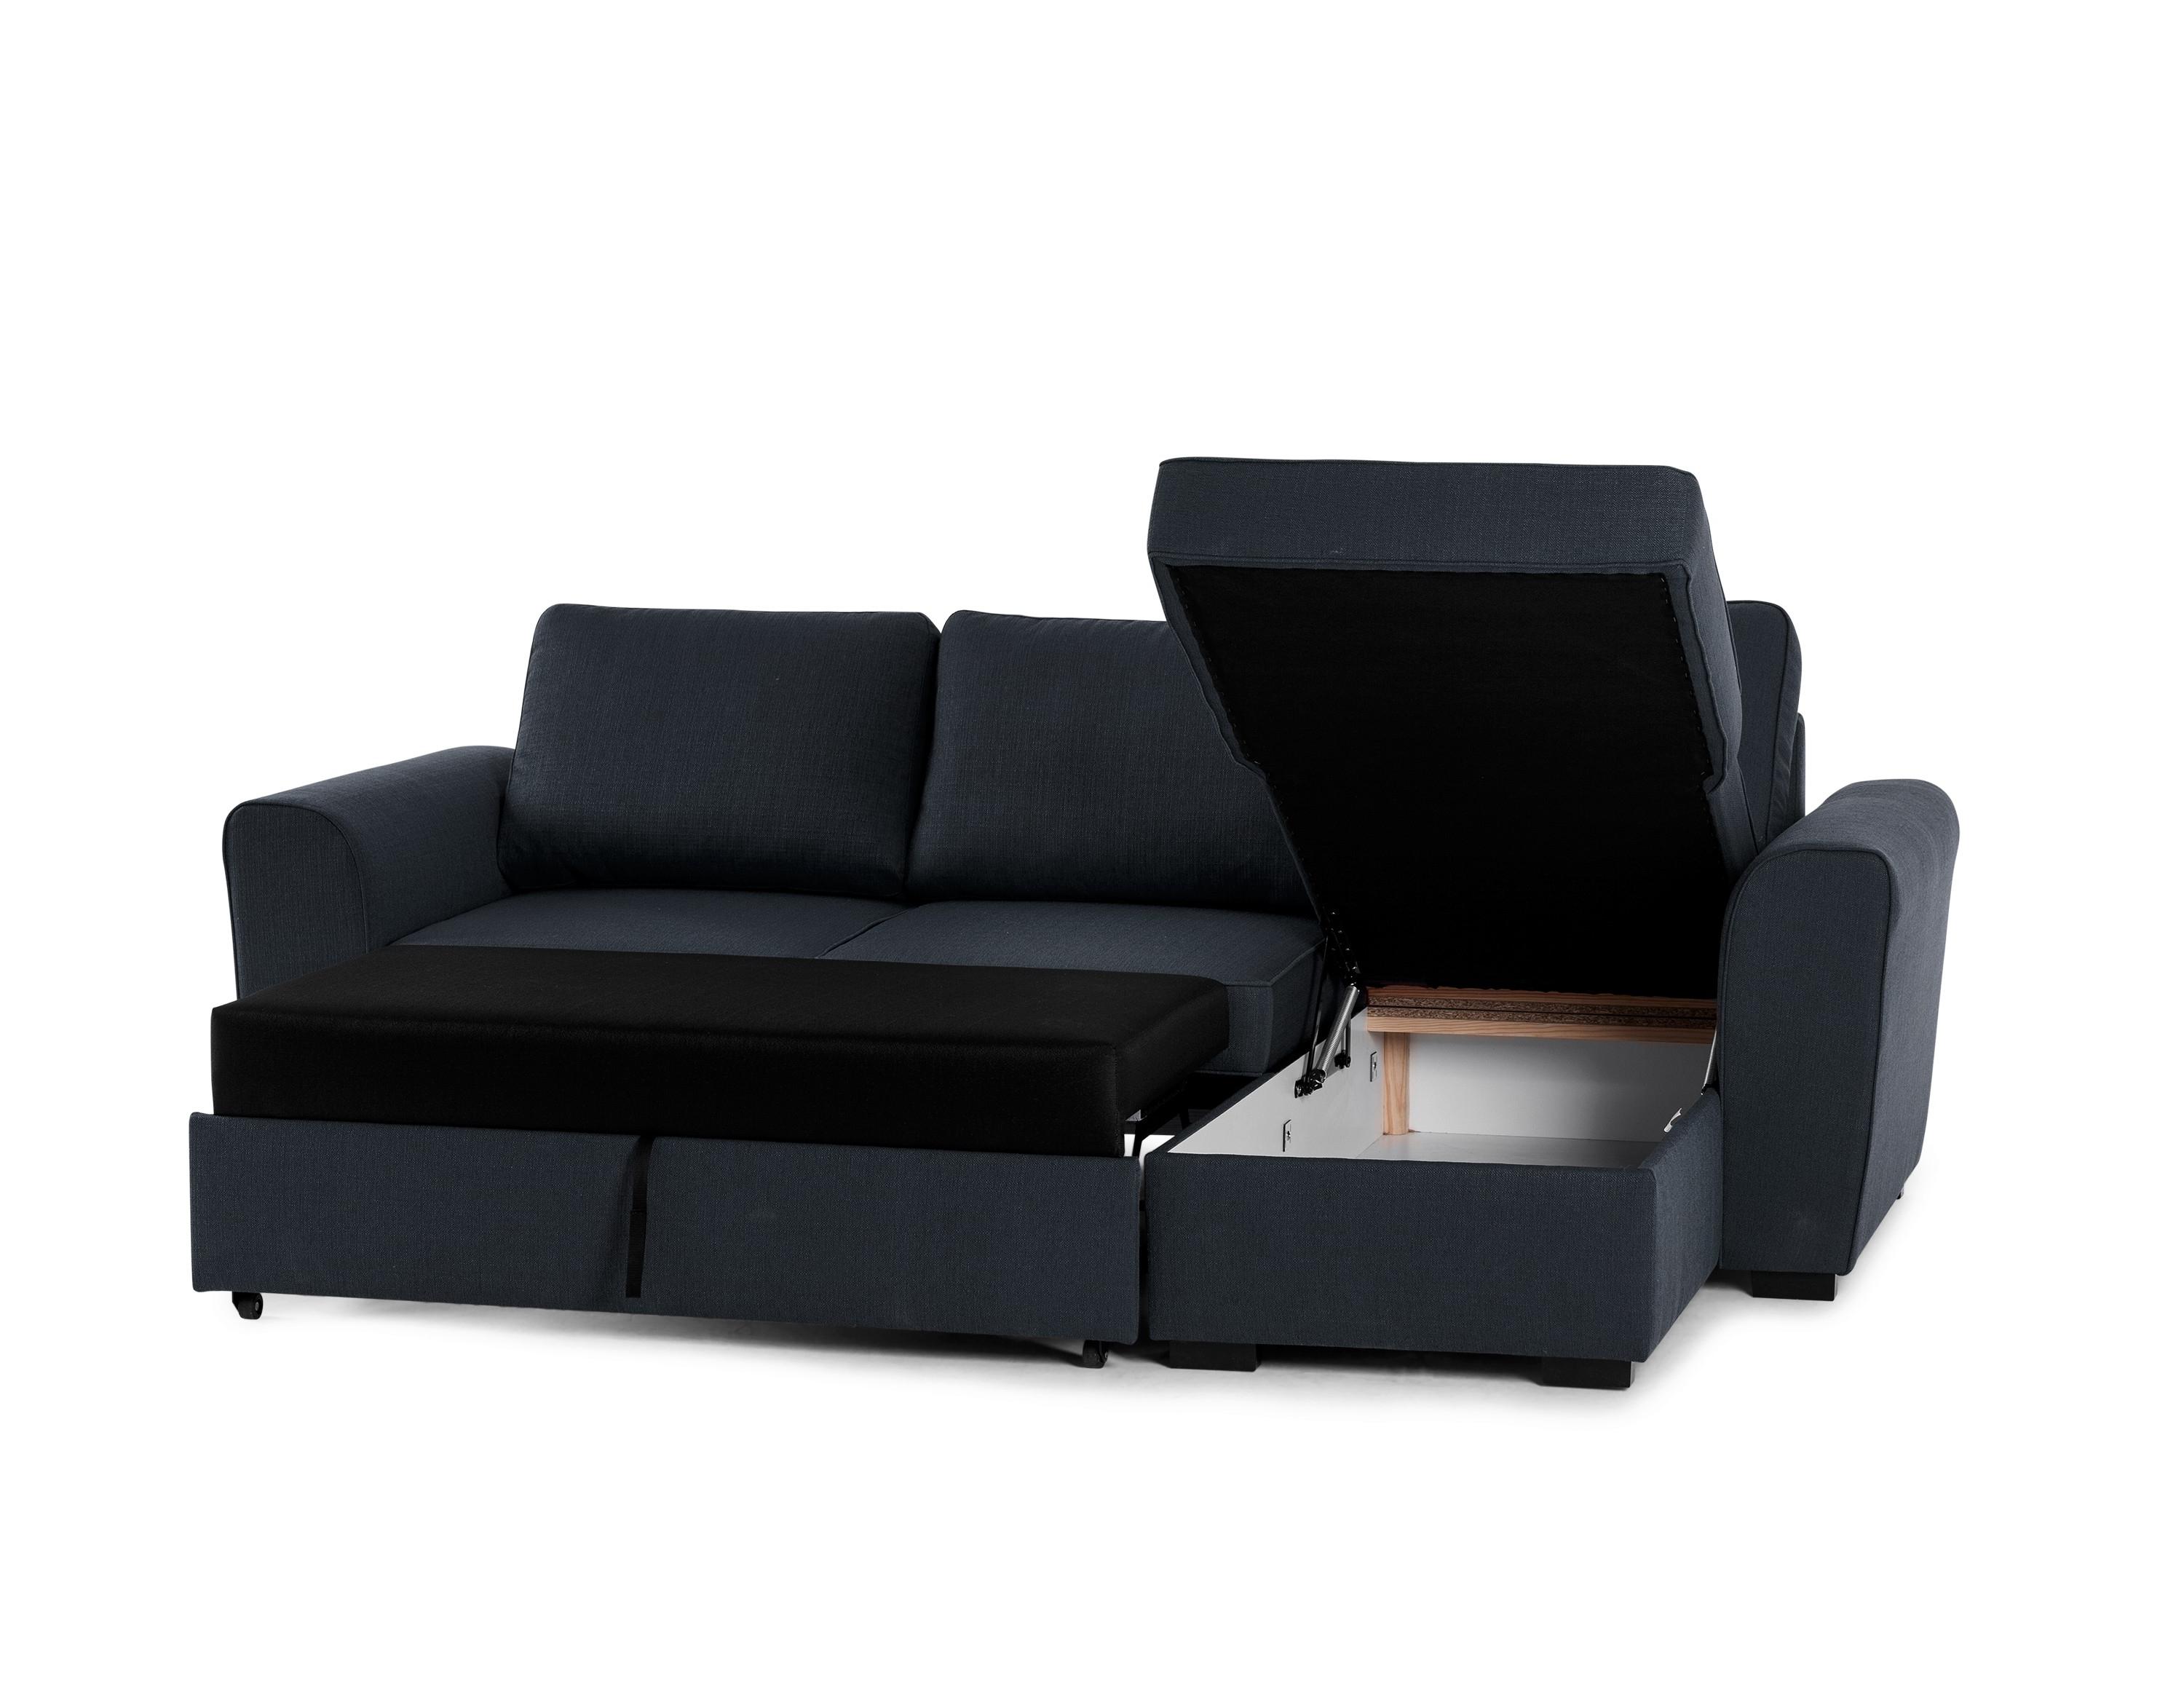 Newest Leather Armchair And Ottoman Chaise Sofa With Storage Ottoman For Leather Sofas With Storage (View 15 of 15)